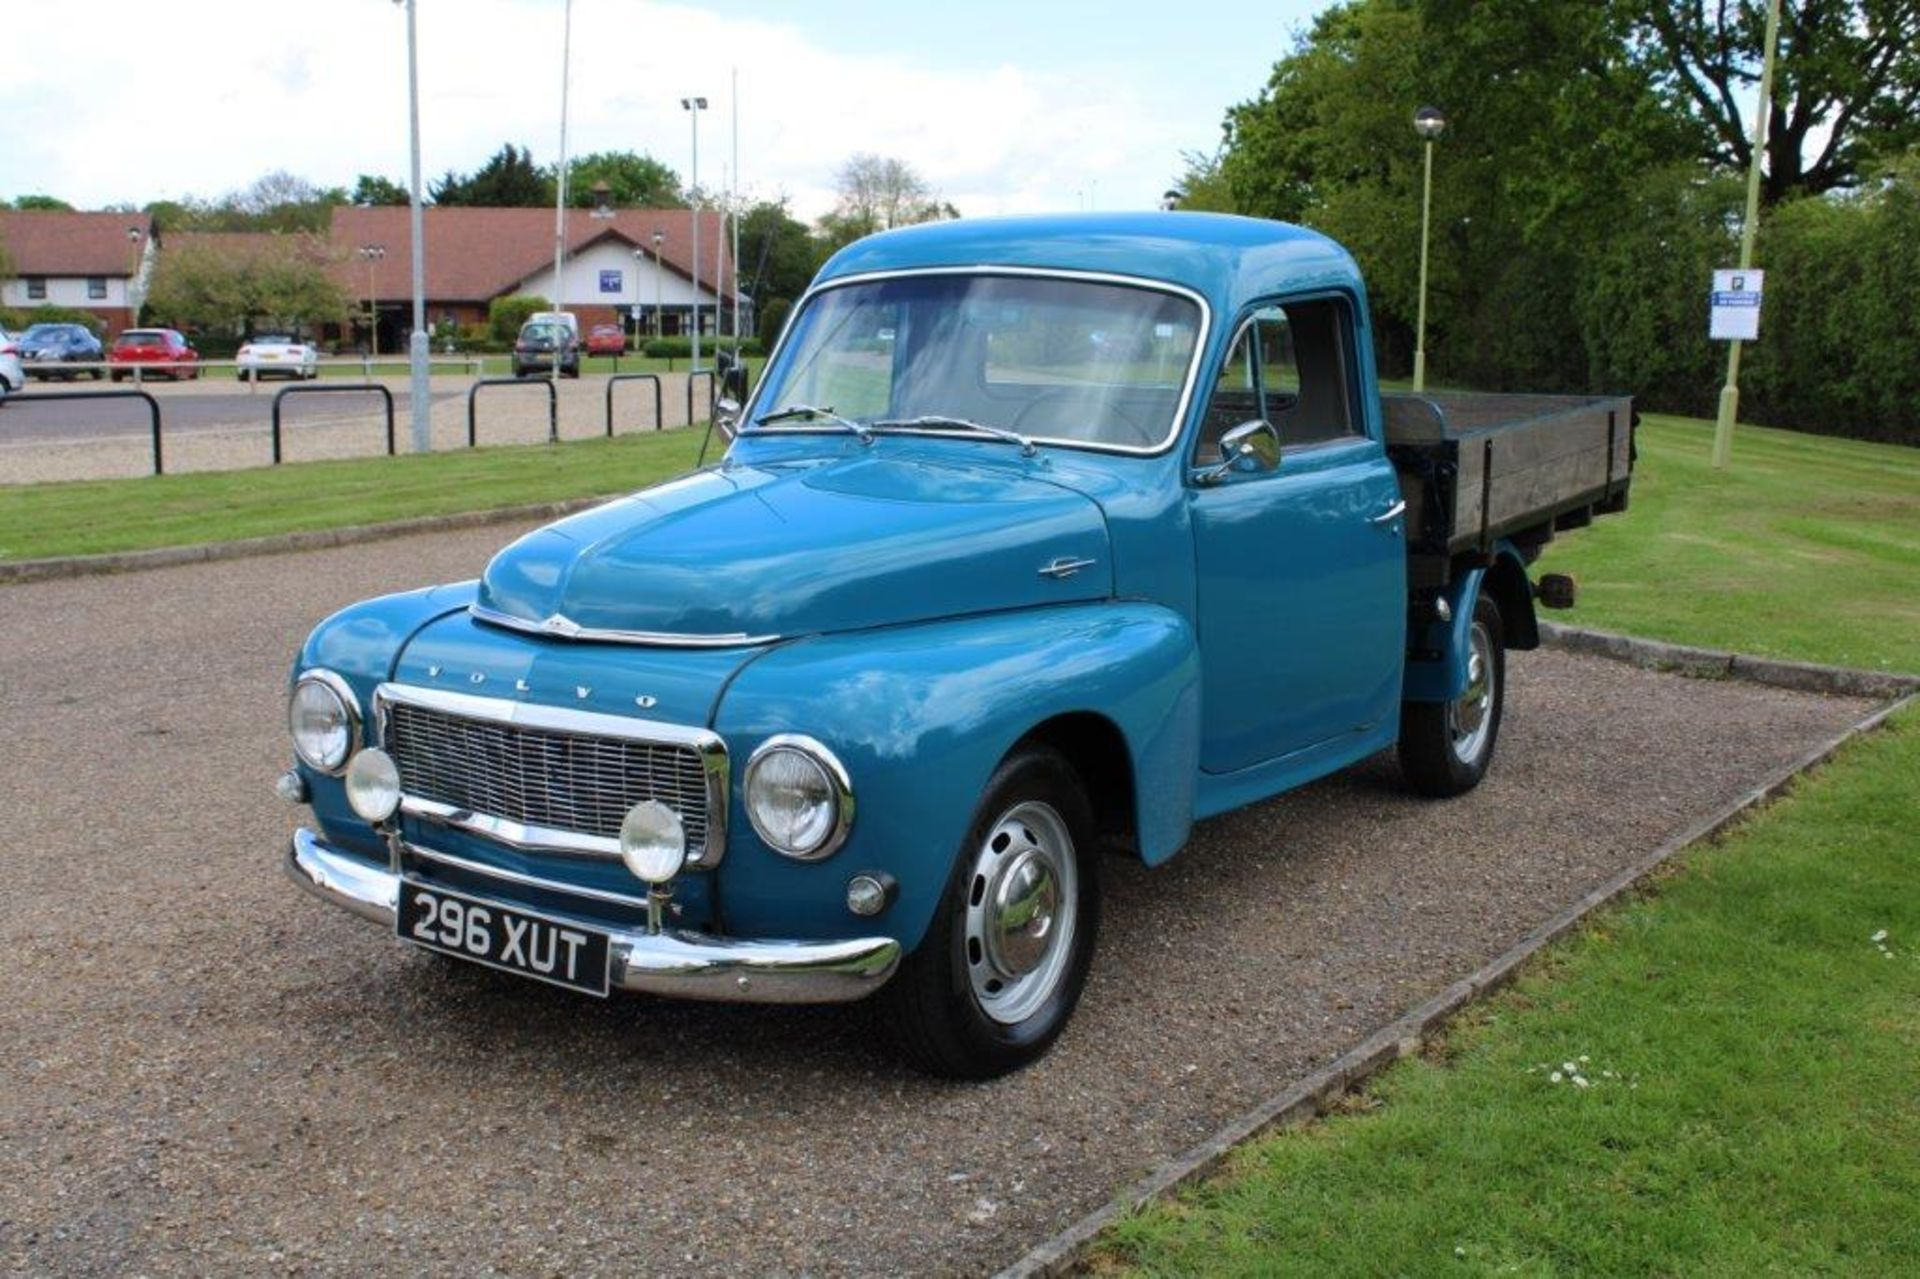 1961 Volvo P 21114 A Pick-Up LHD - Image 3 of 25